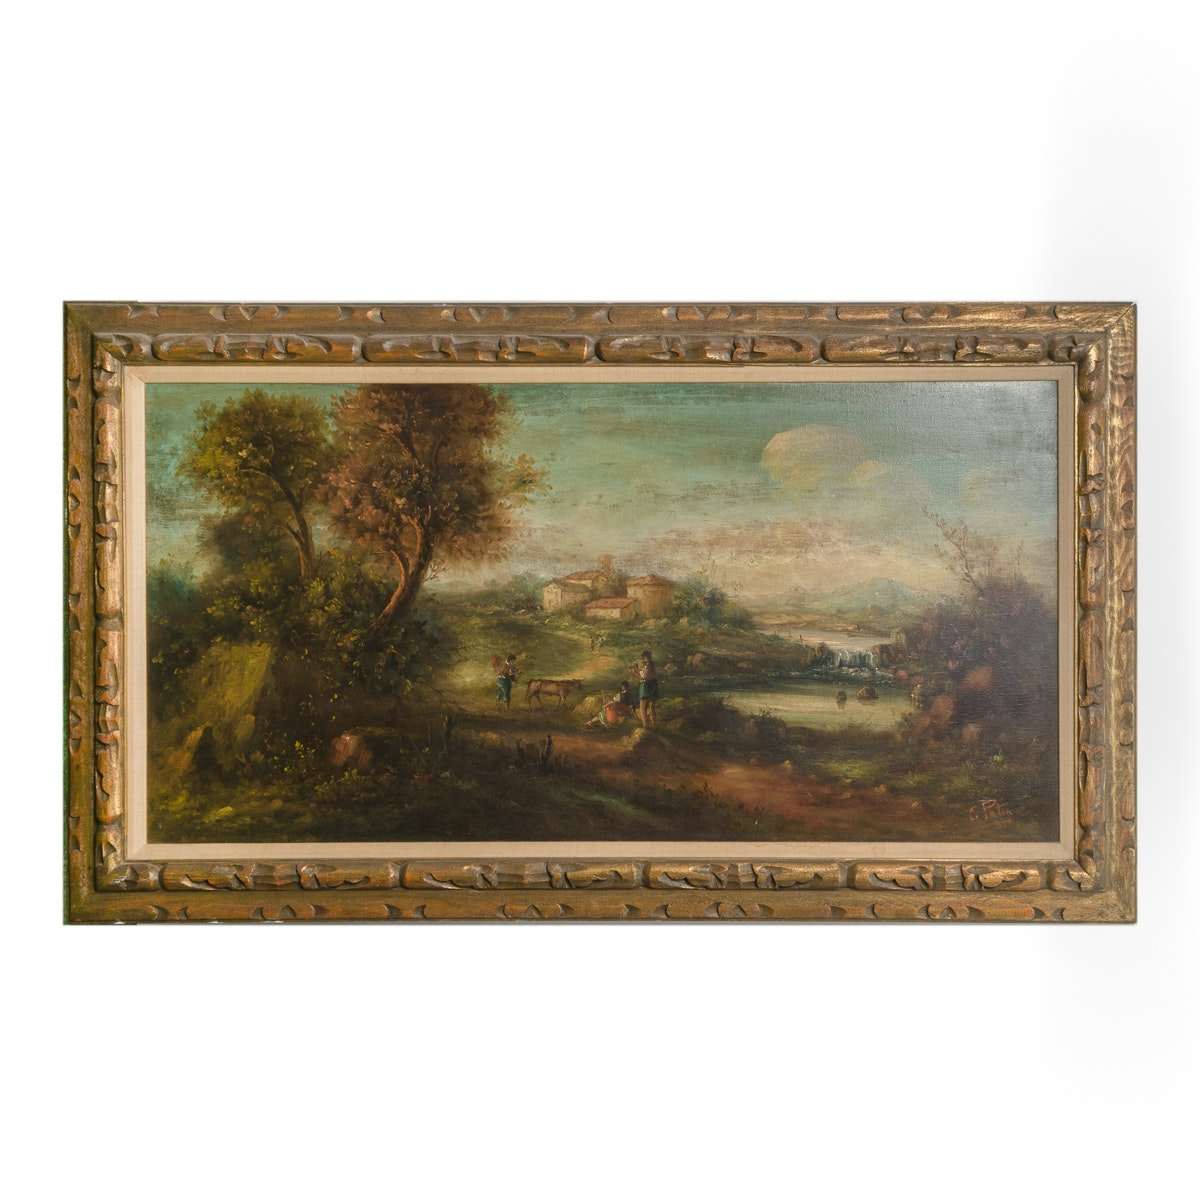 C. Patin Oil Painting Landscape with Figures